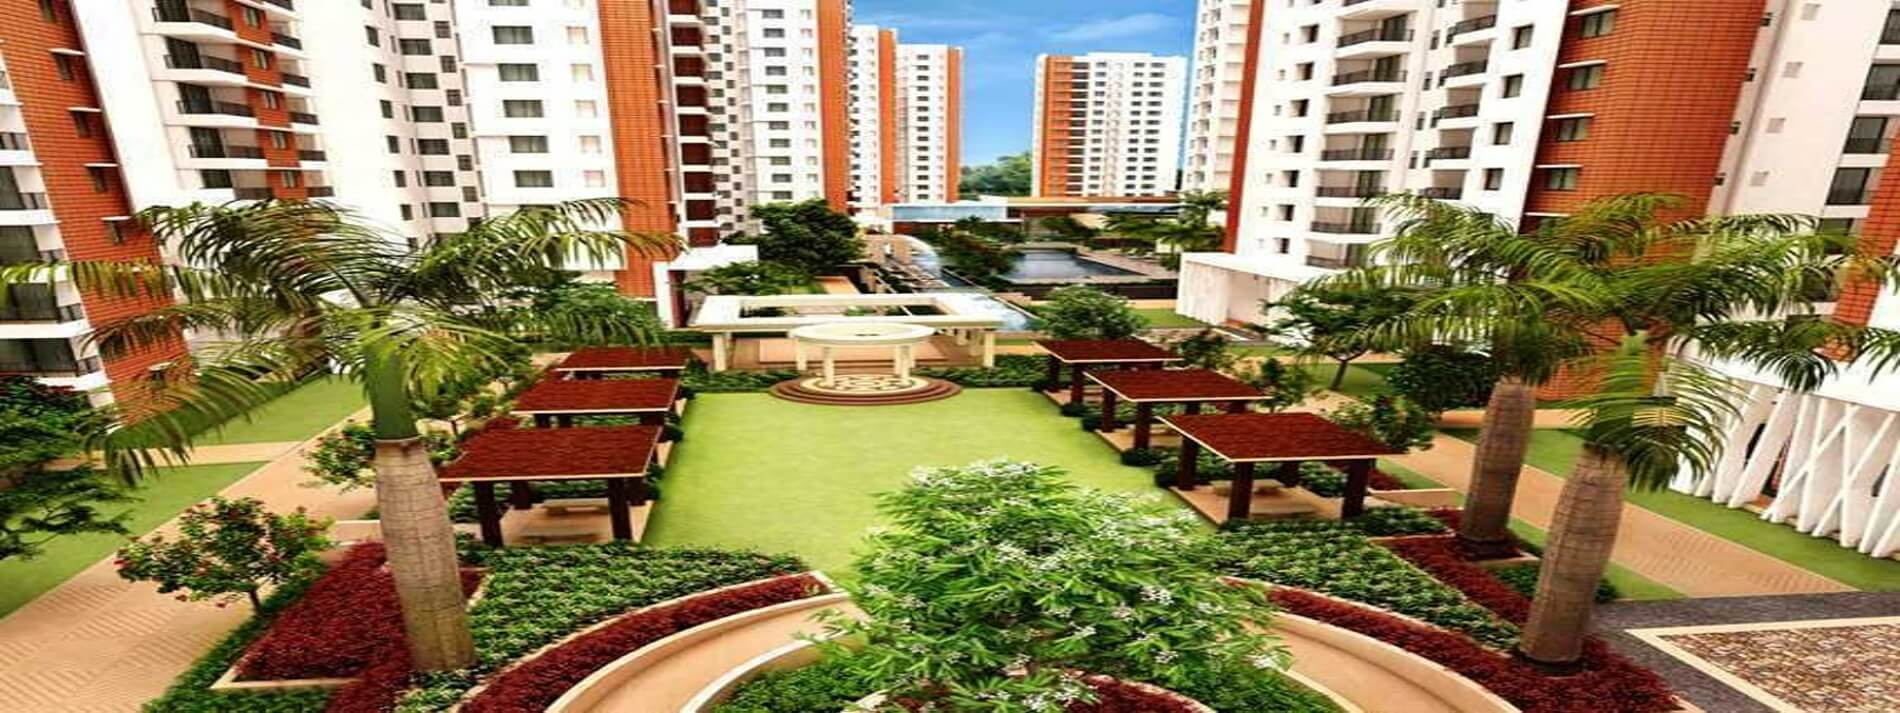 3,4 BHK Flats for sale in Porur